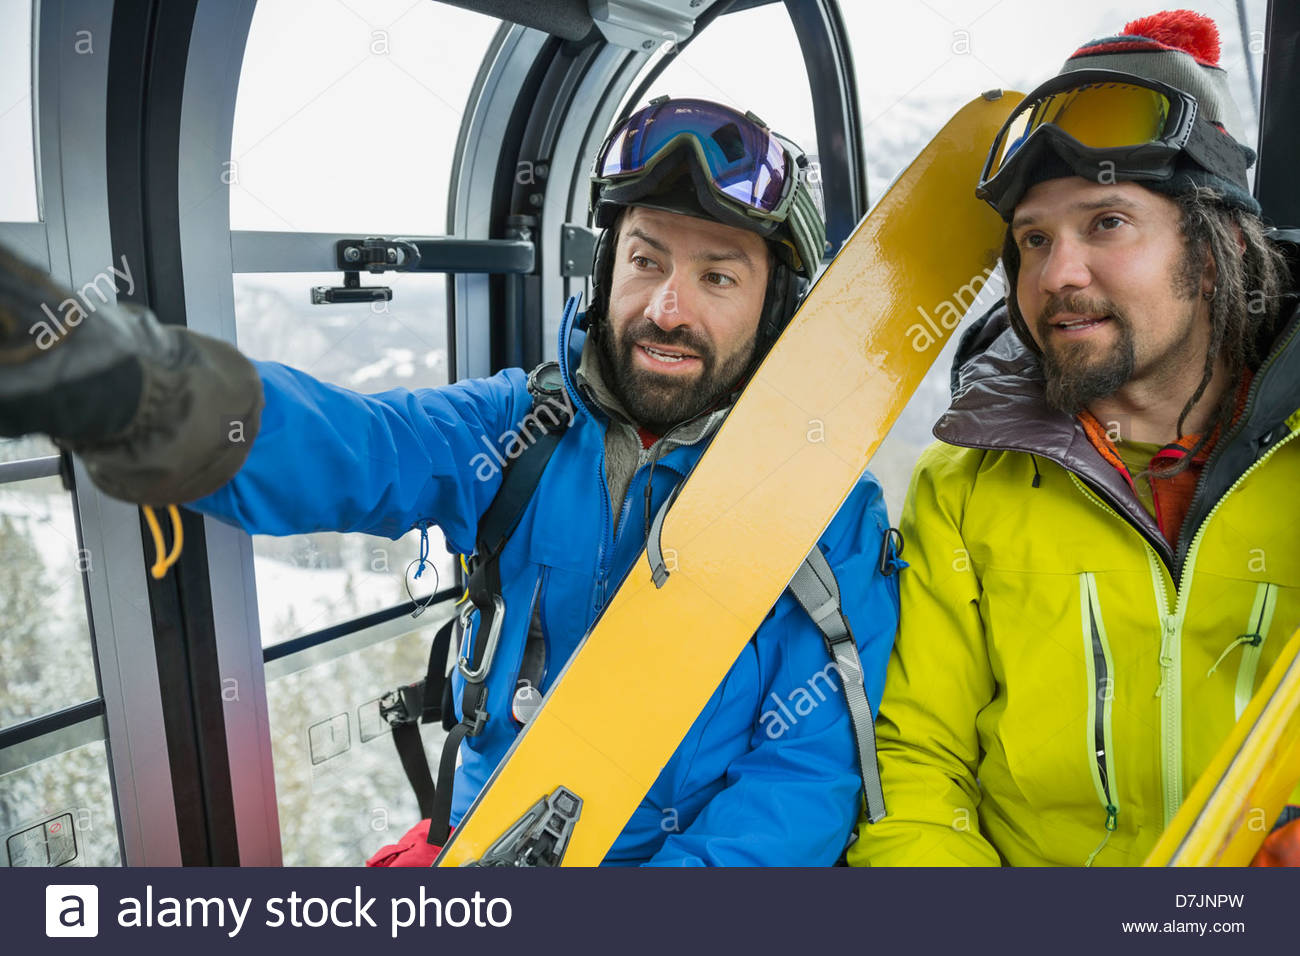 Male skiers talking in gondola in mountains Stock Photo